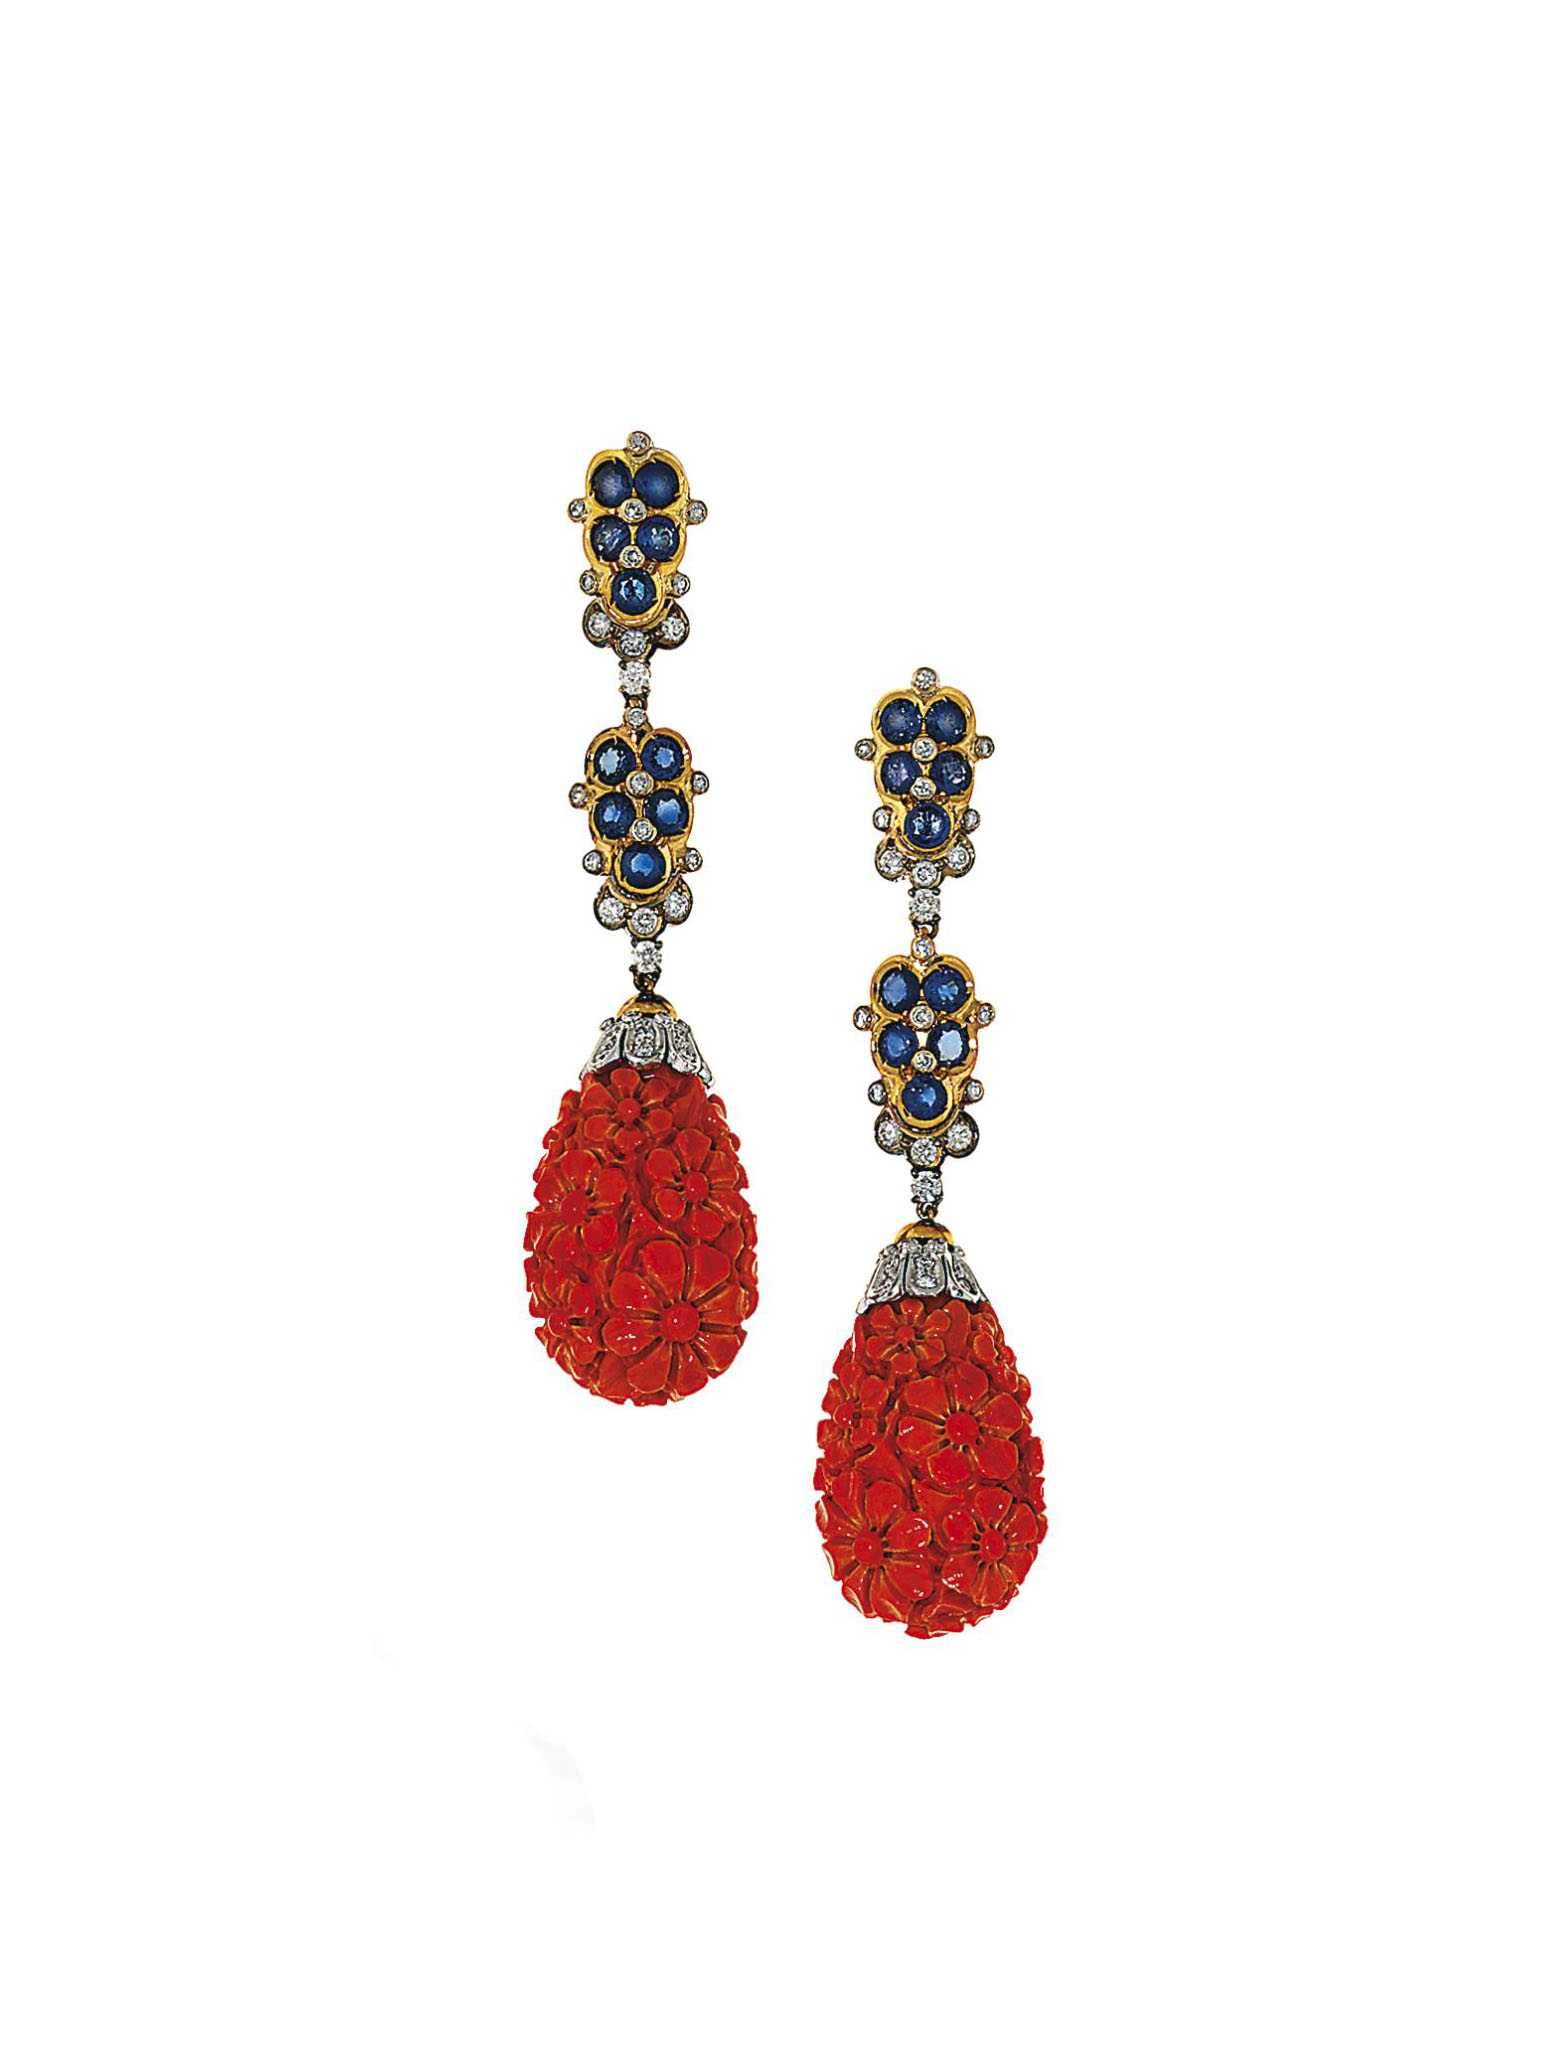 A pair of coral, sapphire and diamond pendent earrings, by Moroni